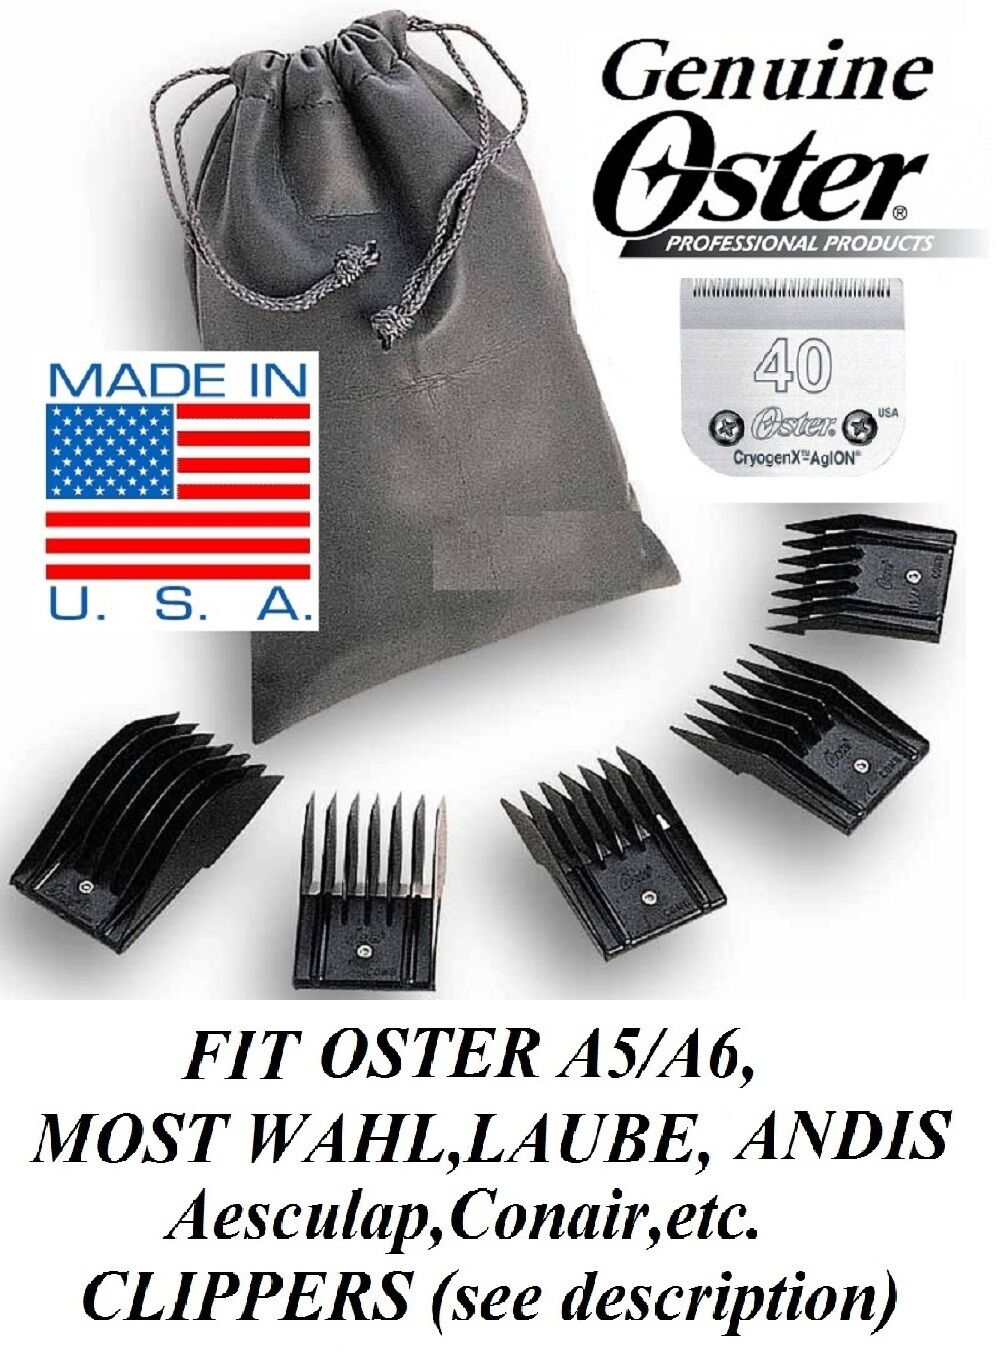 OSTER A5 Attachment Guide 5 Comb SET&Cryogen-X 40 BladeFit A6,Many Wahl Clipper